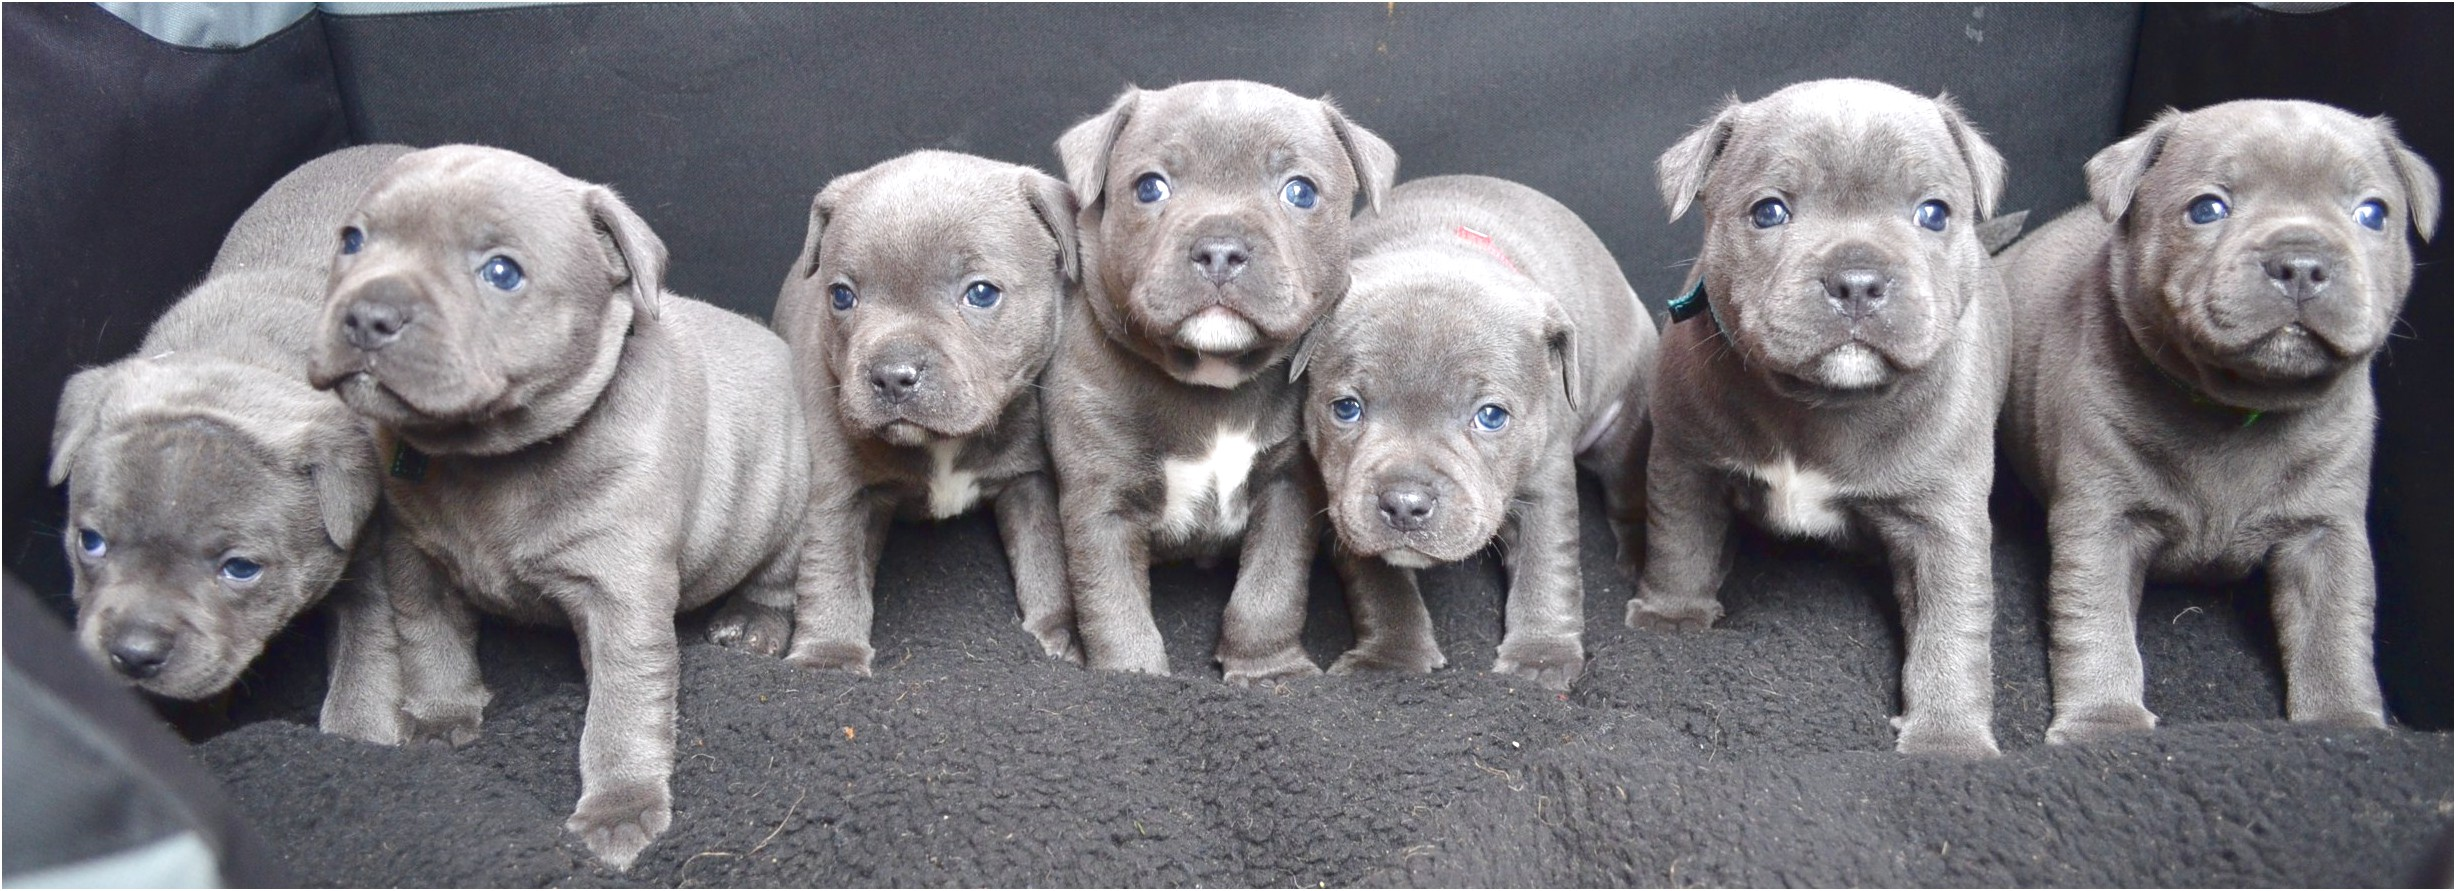 staffordshire bull terrier puppies for sale qld